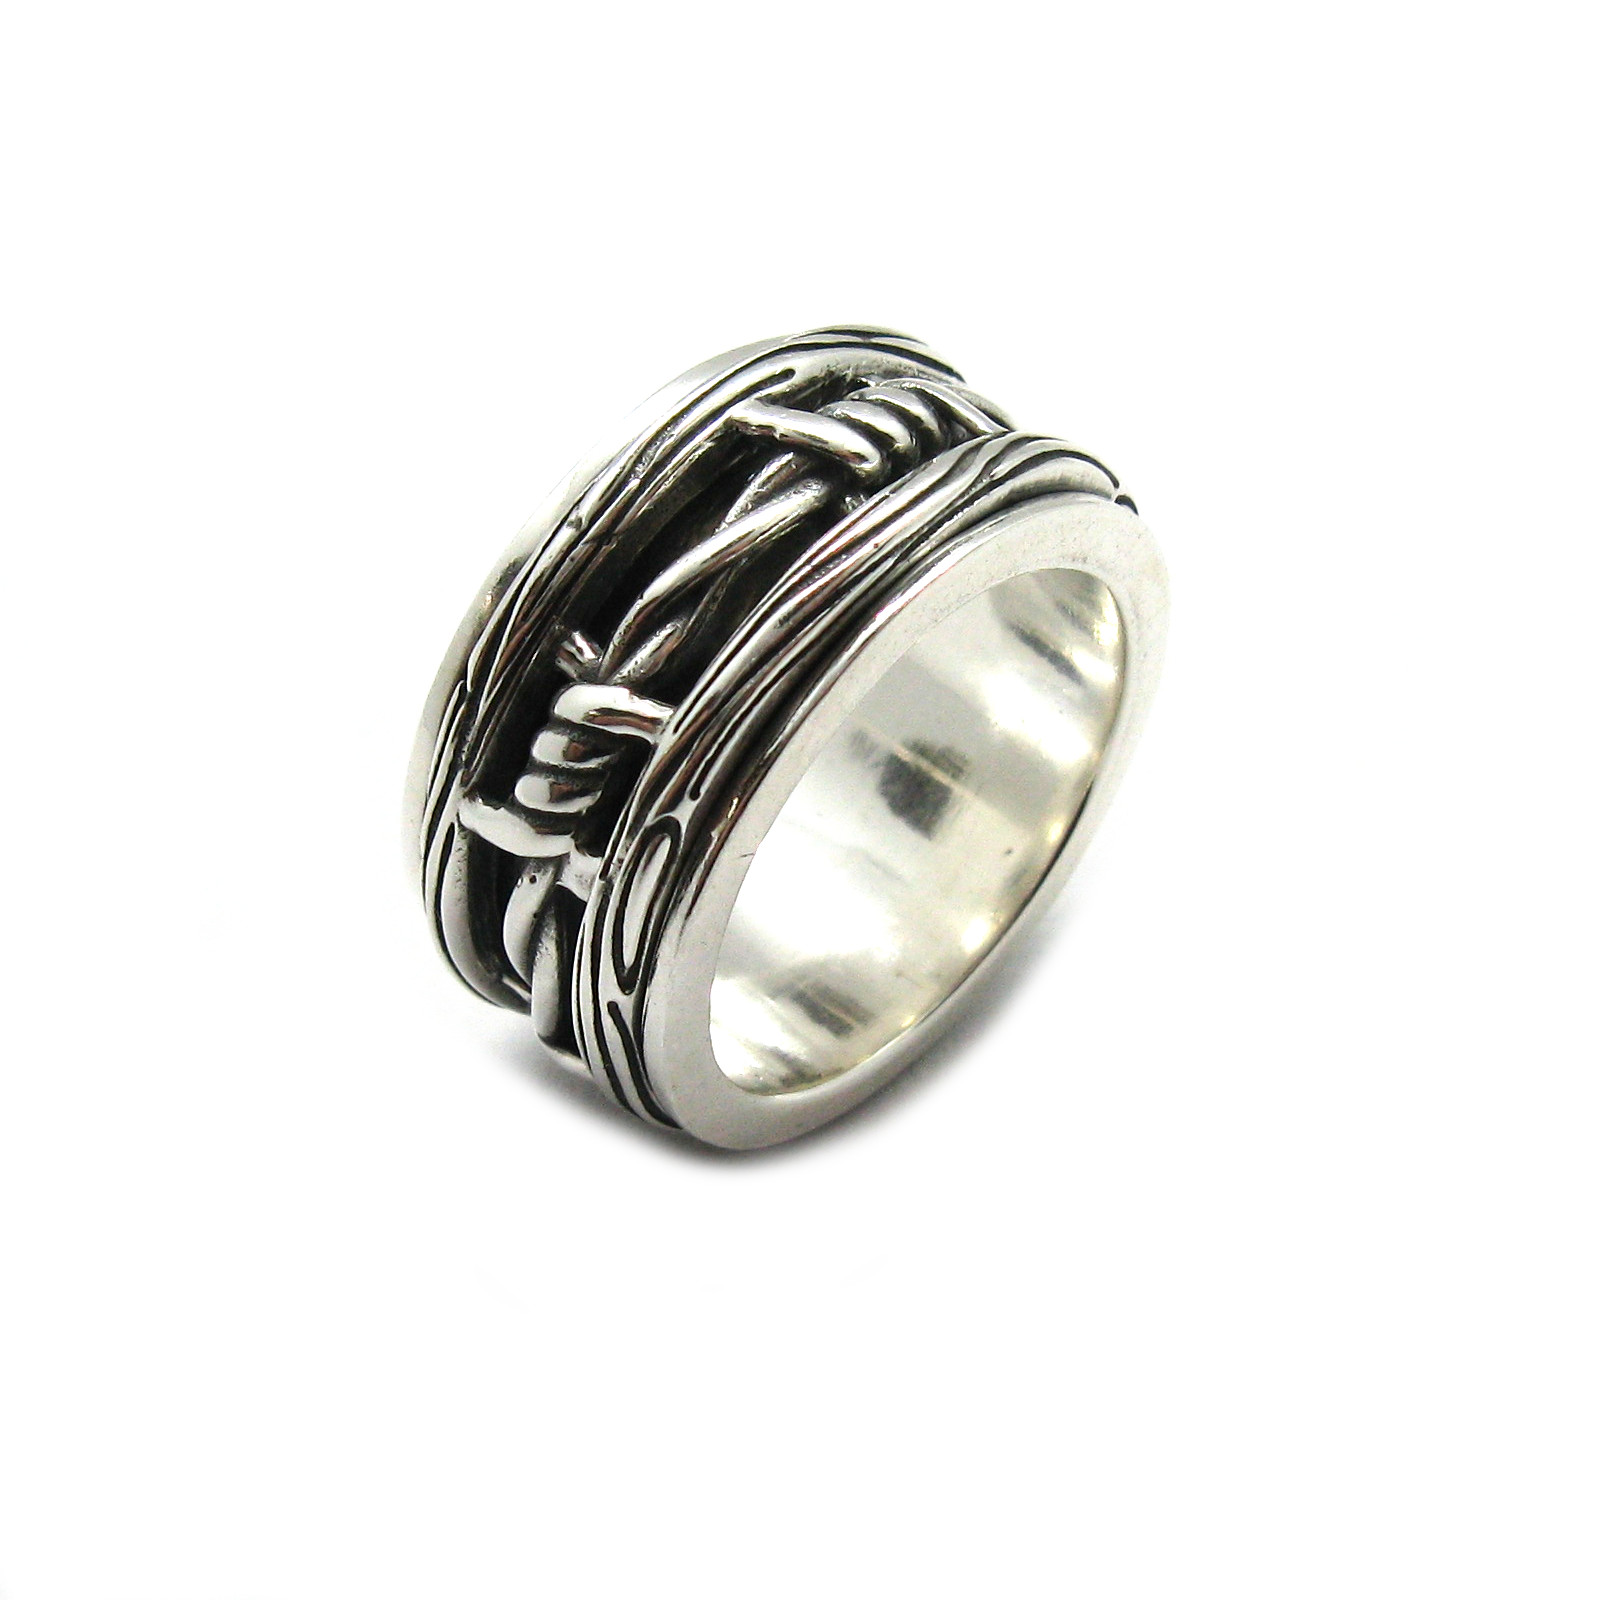 Silver ring - R001944